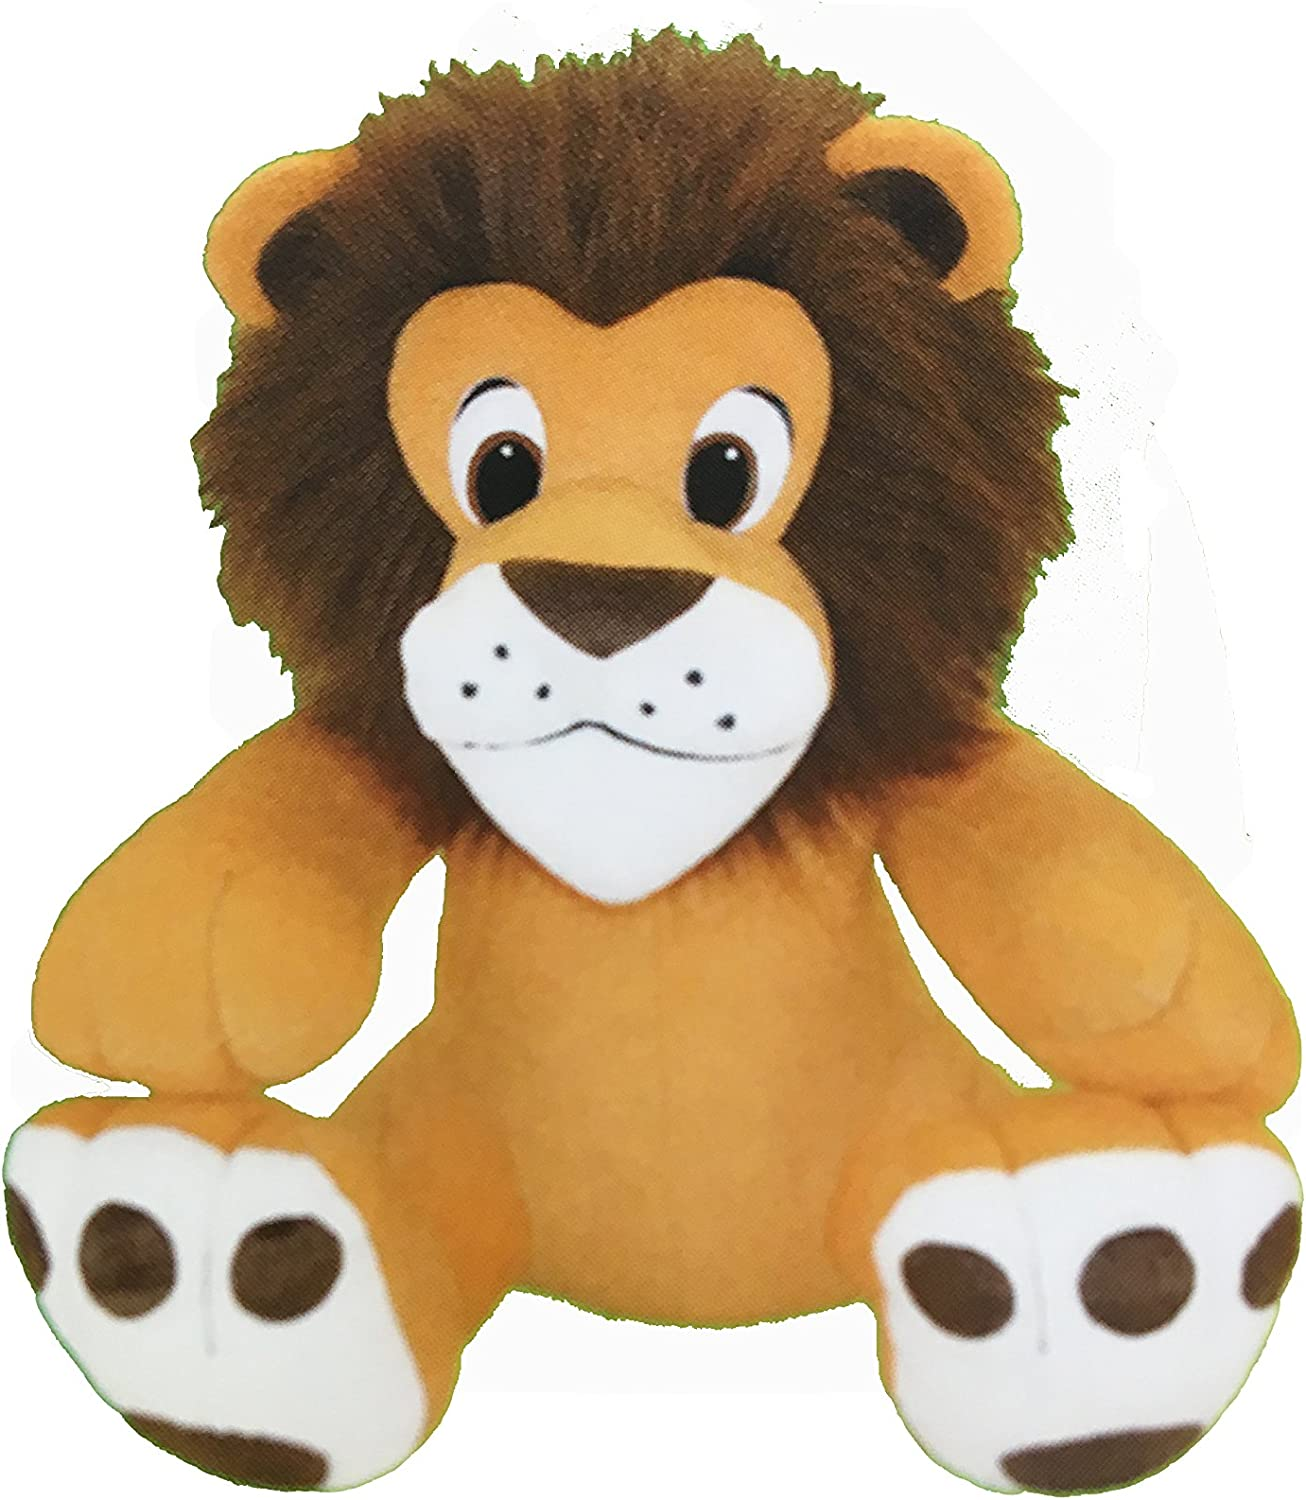 ToySource CTC008JU016AA Leaving The Lion Plush Toy, Grade  Kindergarten to 12, 16-Inch Height, 8-Inch Width, 12-Inch Length